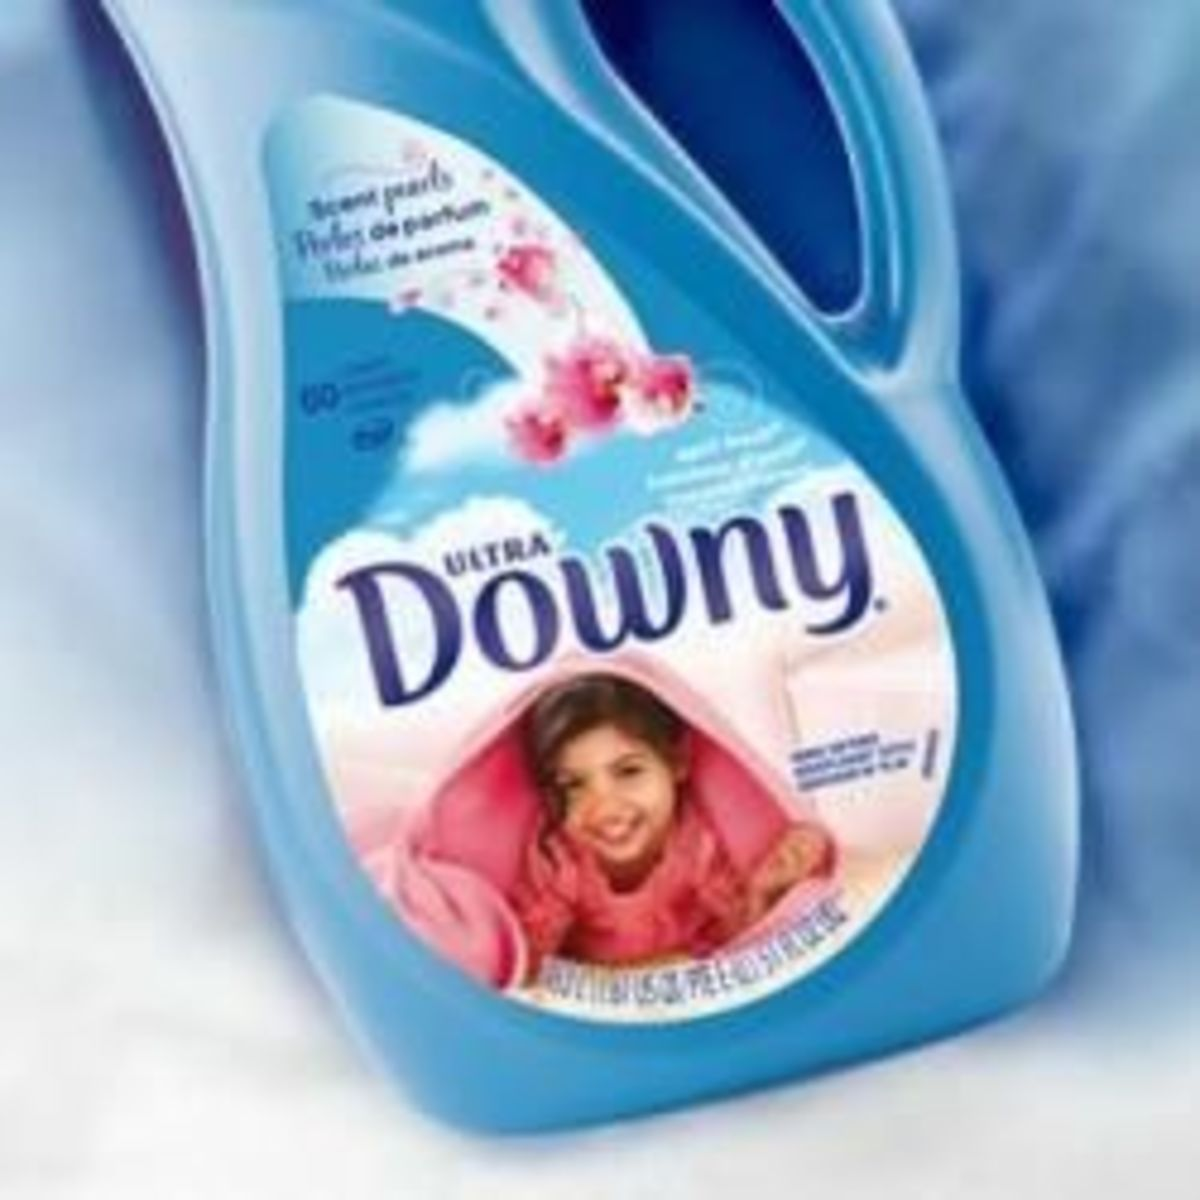 Downy or Comfort fabric softener, Which is better?